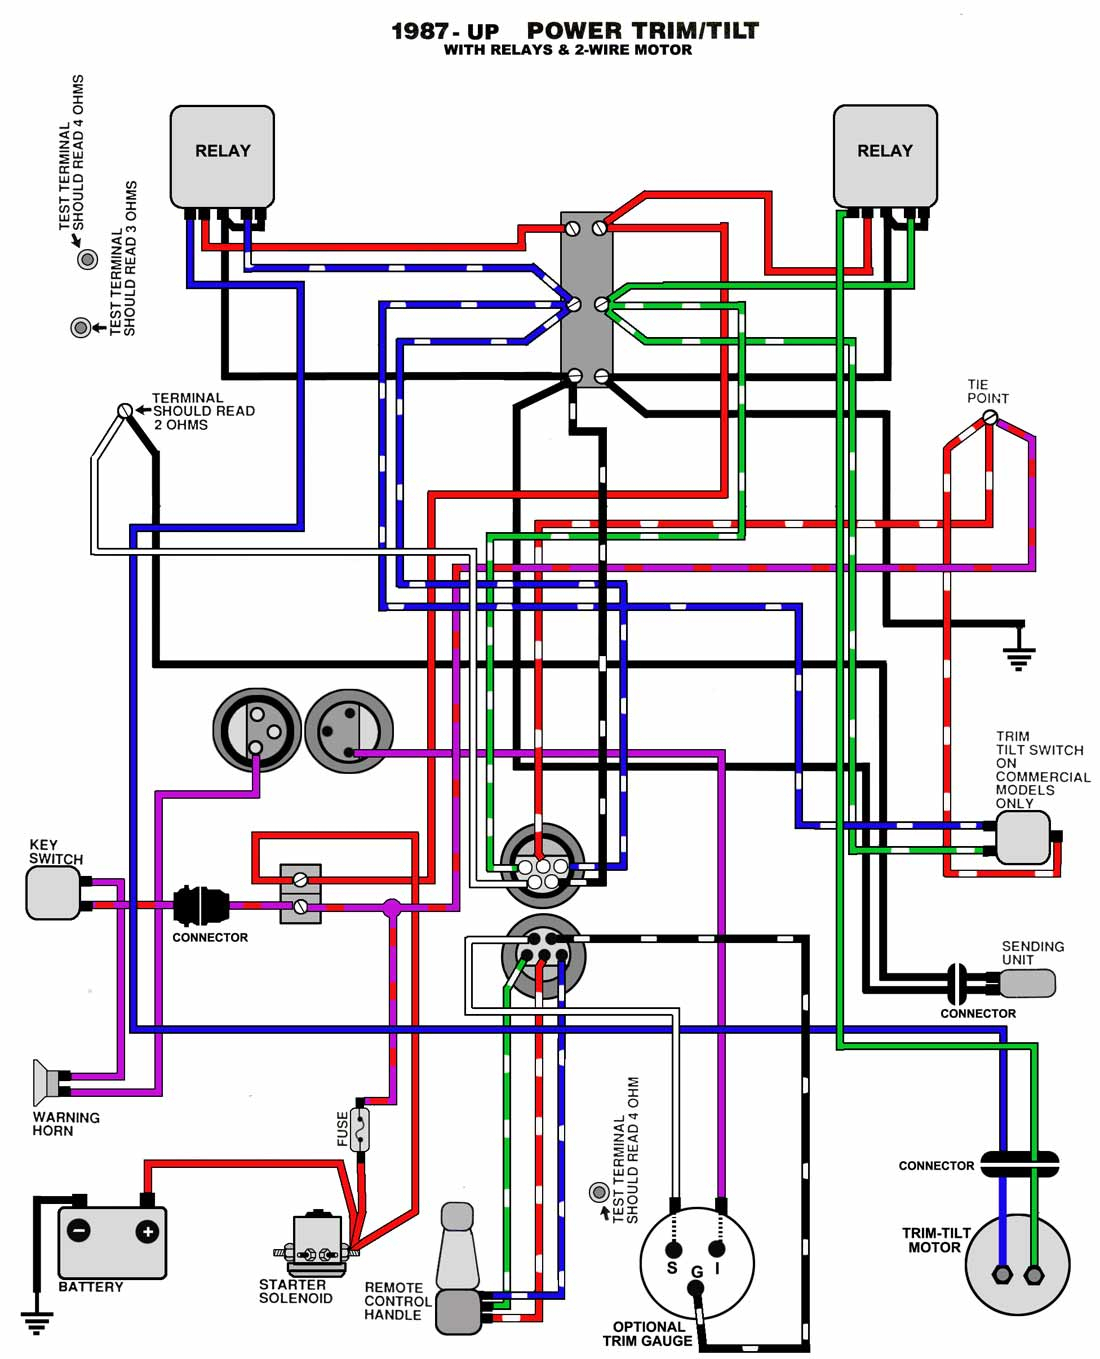 Tilt Switch Wiring Diagram | Wiring Library - Wiring Diagram For Mercury Outboard Motor